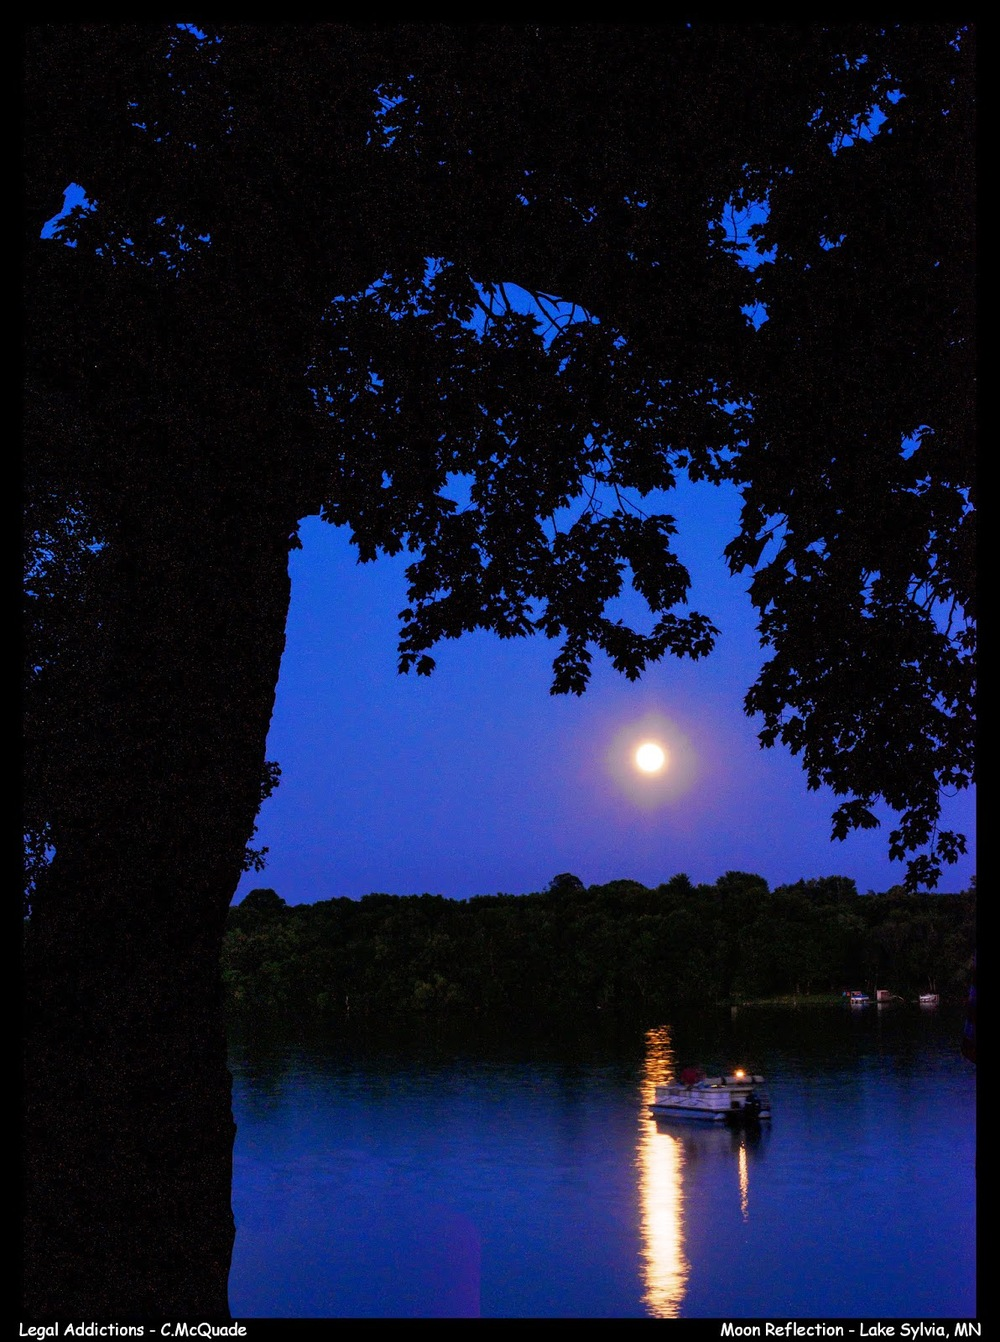 super+moon+lake+sylvia-20144436.jpg